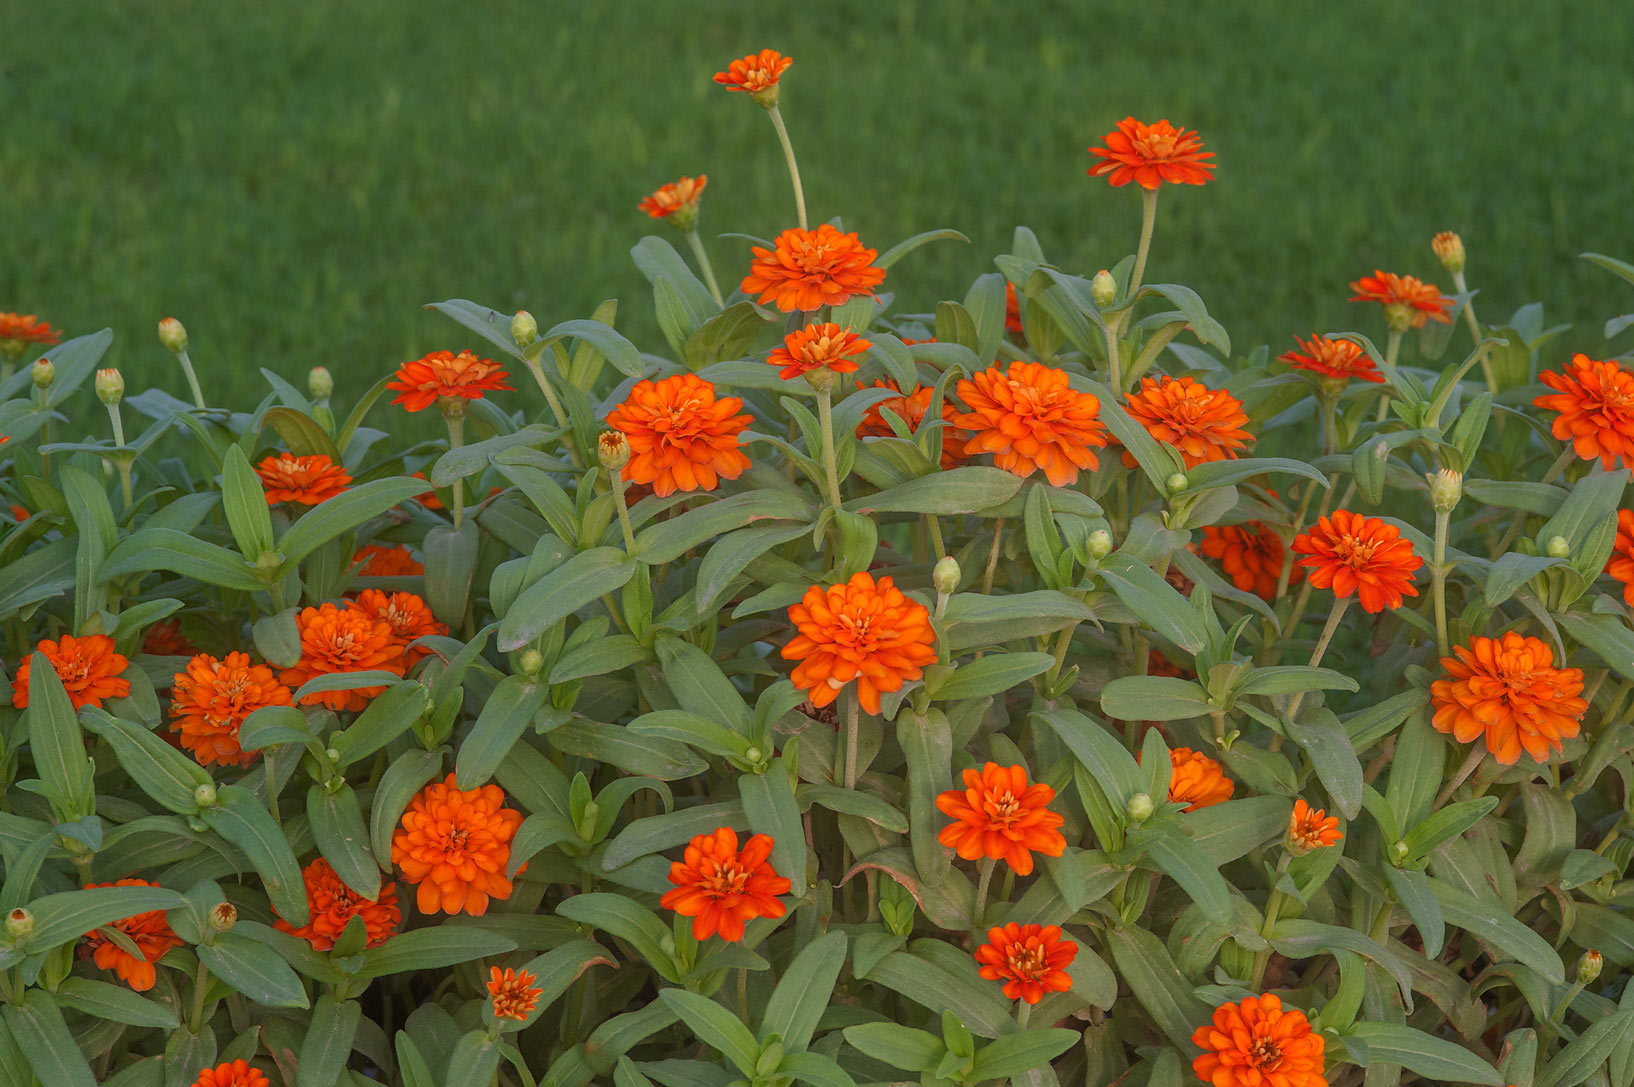 Orange flowers of narrowleaf zinnia (Zinnia...on Corniche promenade. Doha, Qatar